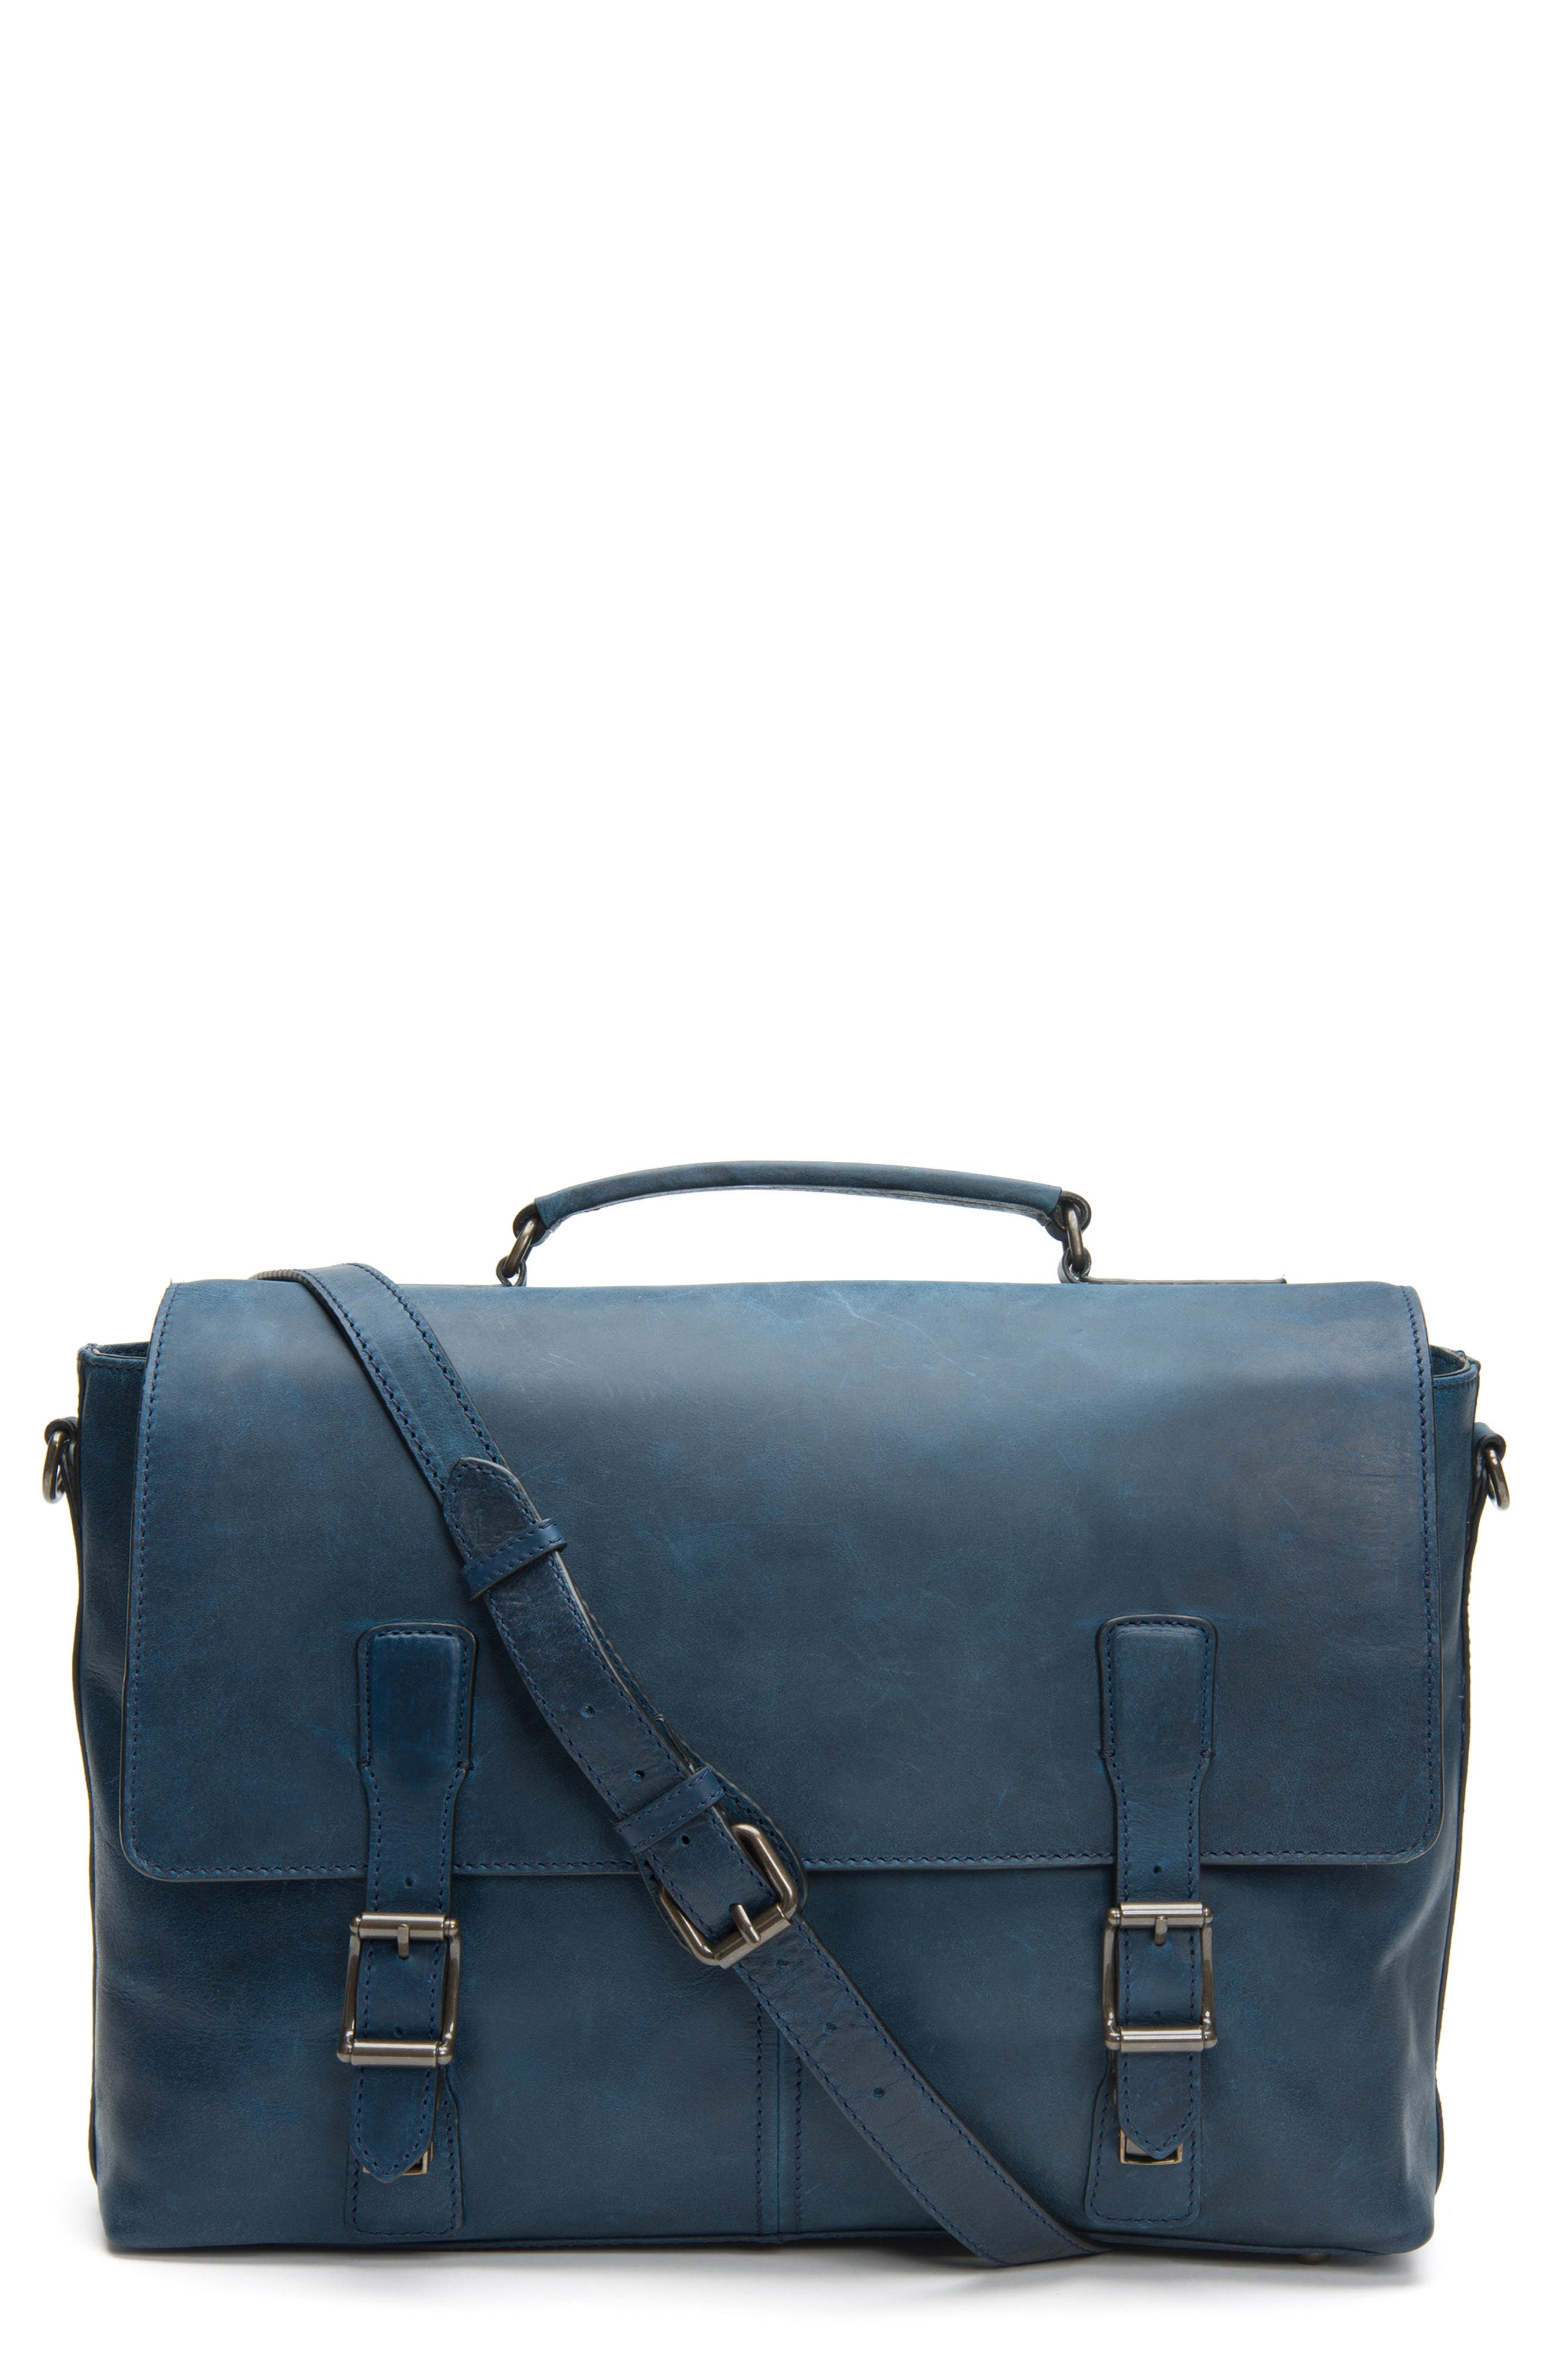 FRYE, Logan Leather Briefcase, Main thumbnail 1, color, NAVY